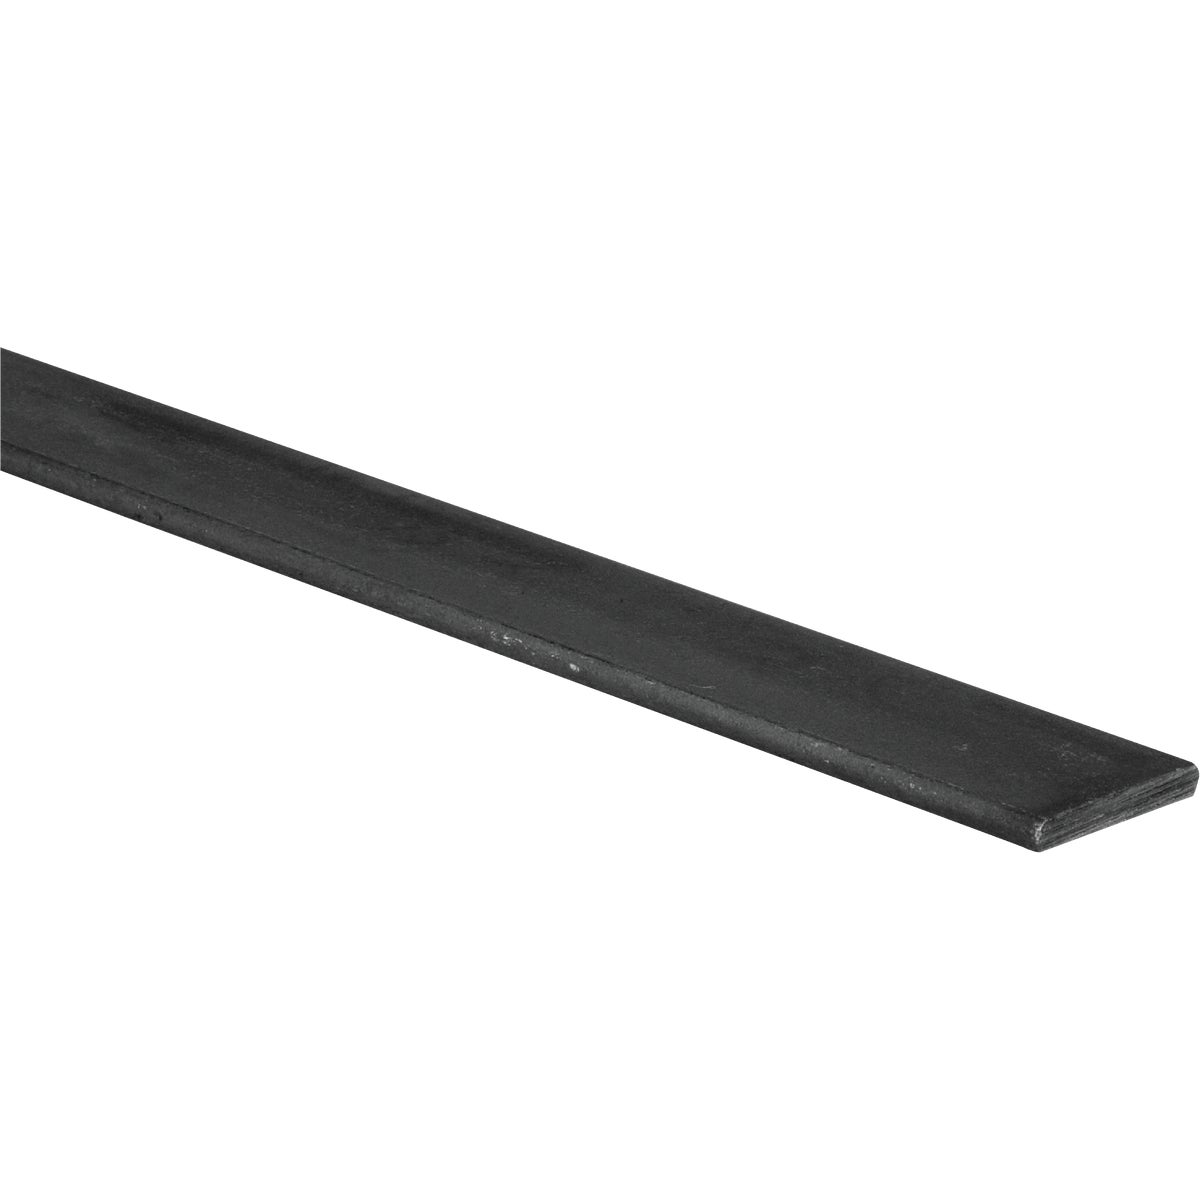 1/8X1-1/2X4' HR FLAT BAR - N215582 by National Mfg Co